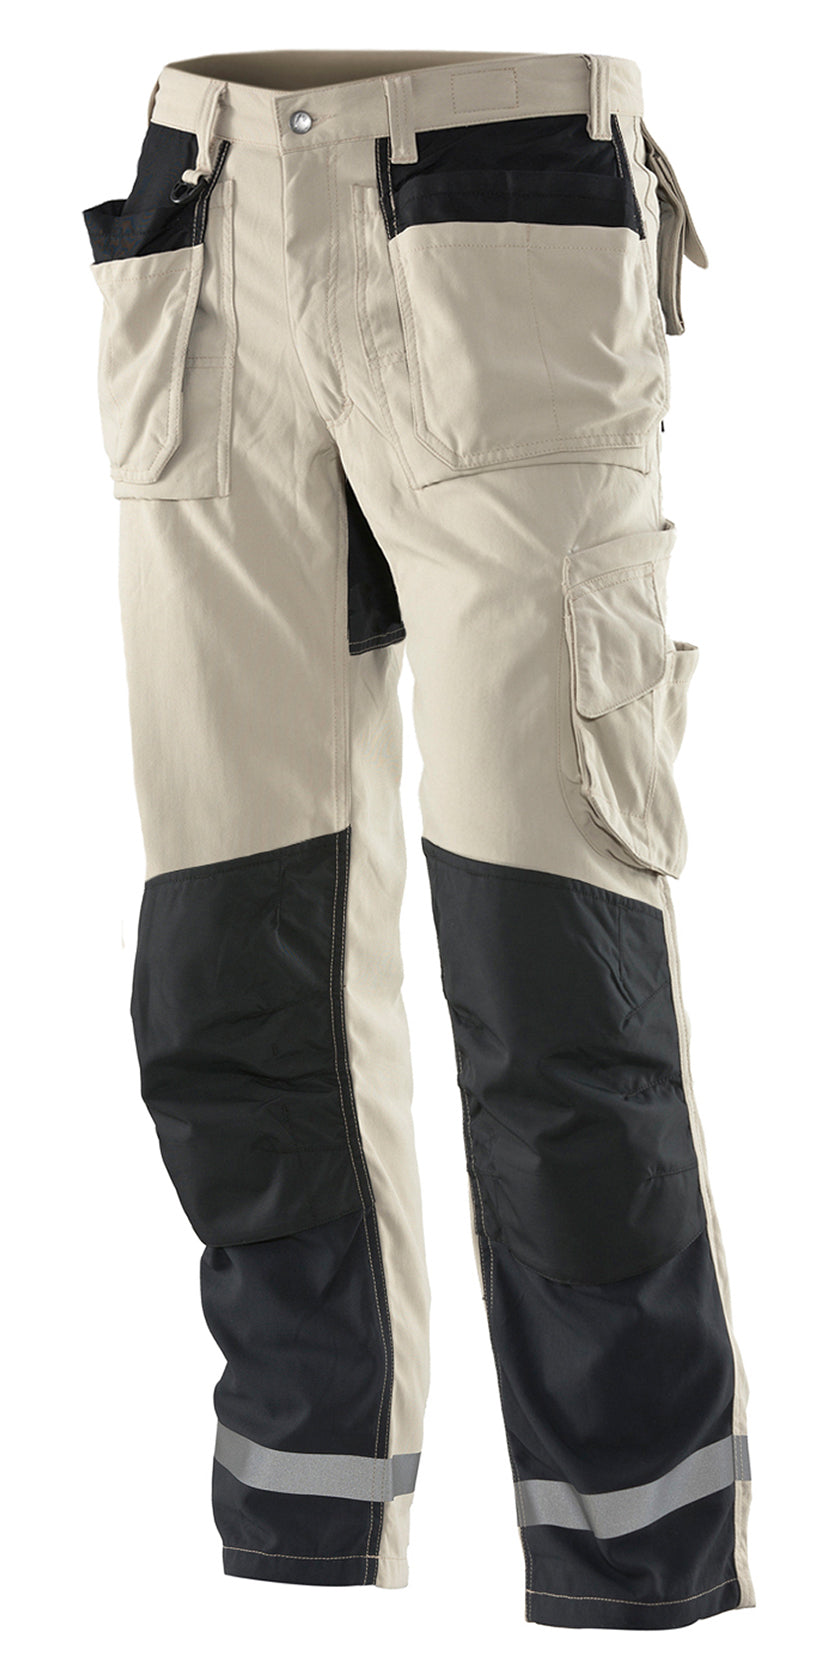 Service Trousers with holster pockets | 2630 Jobman workwear